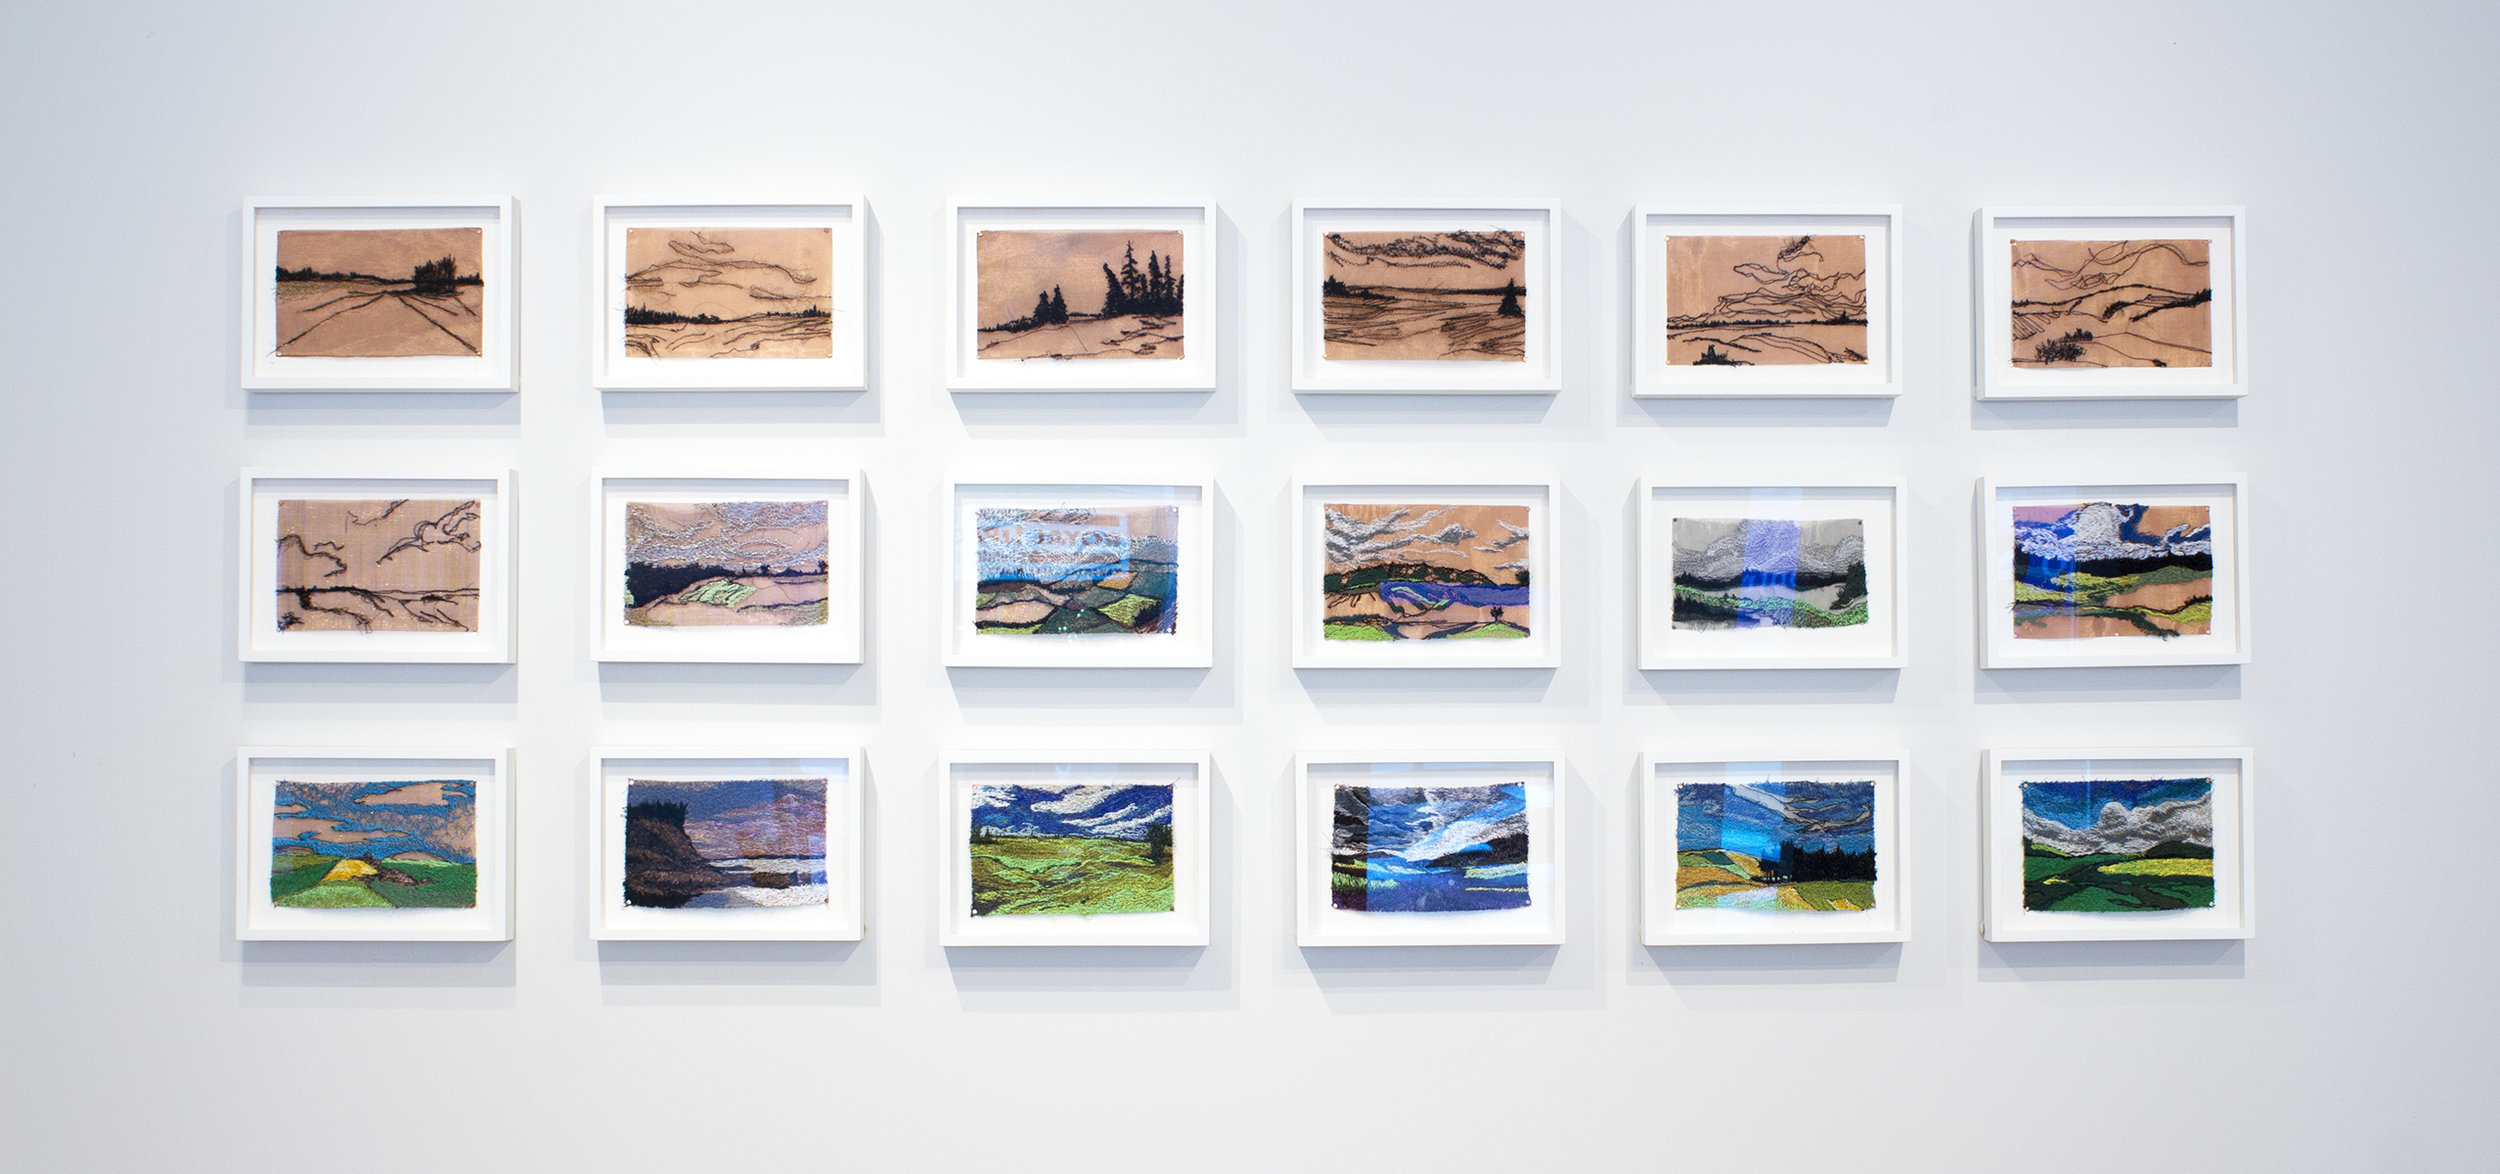 Liz Pead,  Stitched Landscapes  as part of the  Exploring Landcapes  exhibition in collaboration with the Kawartha Yarn & Fibre Festival